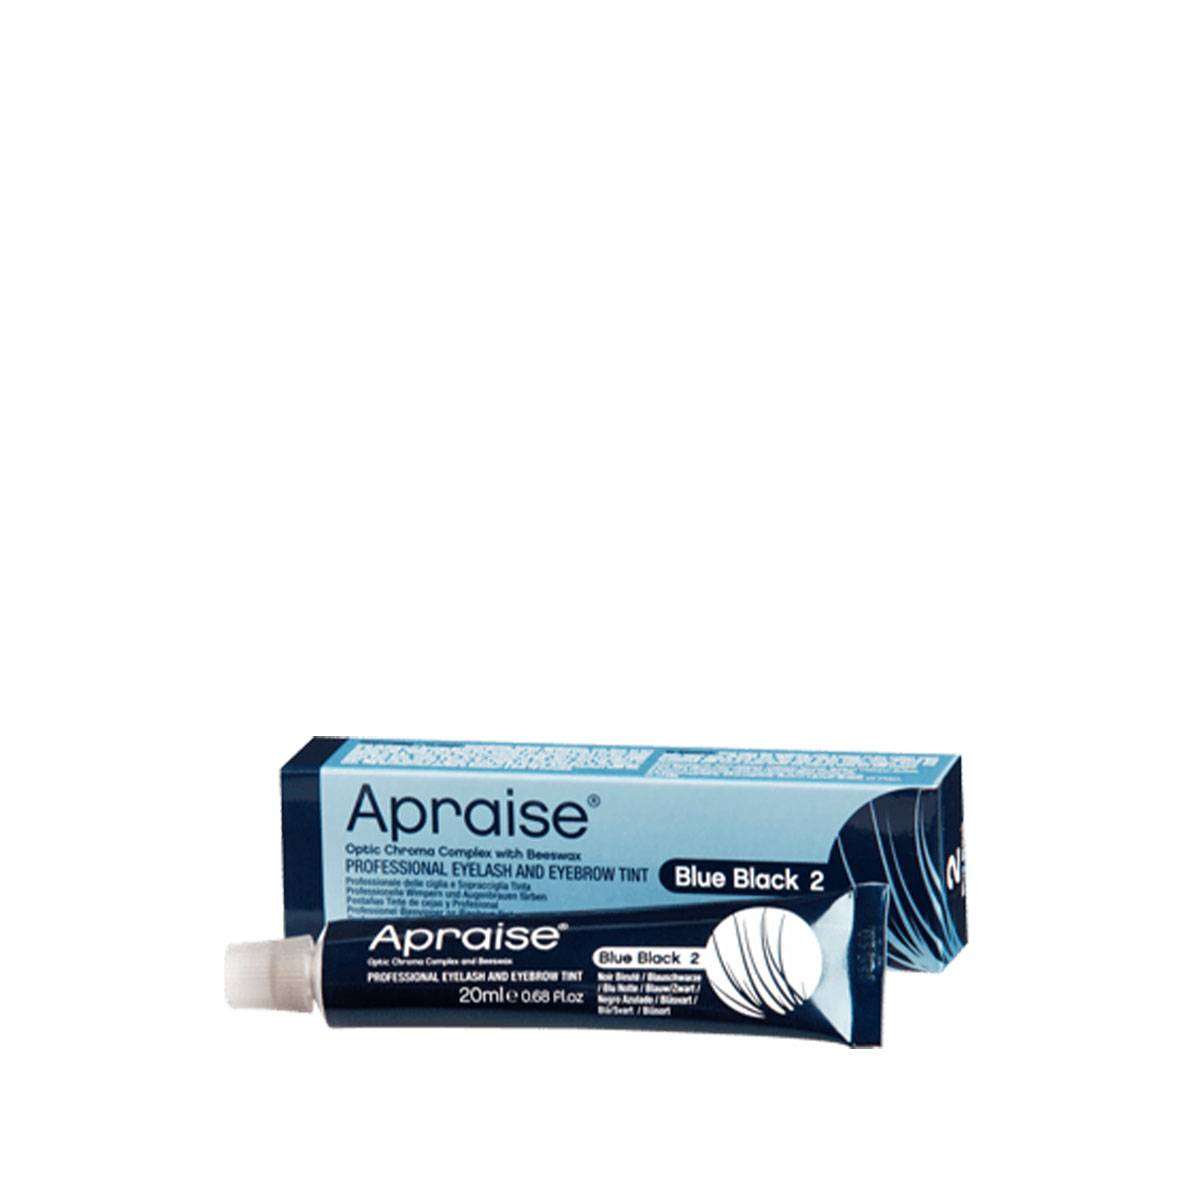 Apraise 2 Blue Black 20 Ml Eyelash